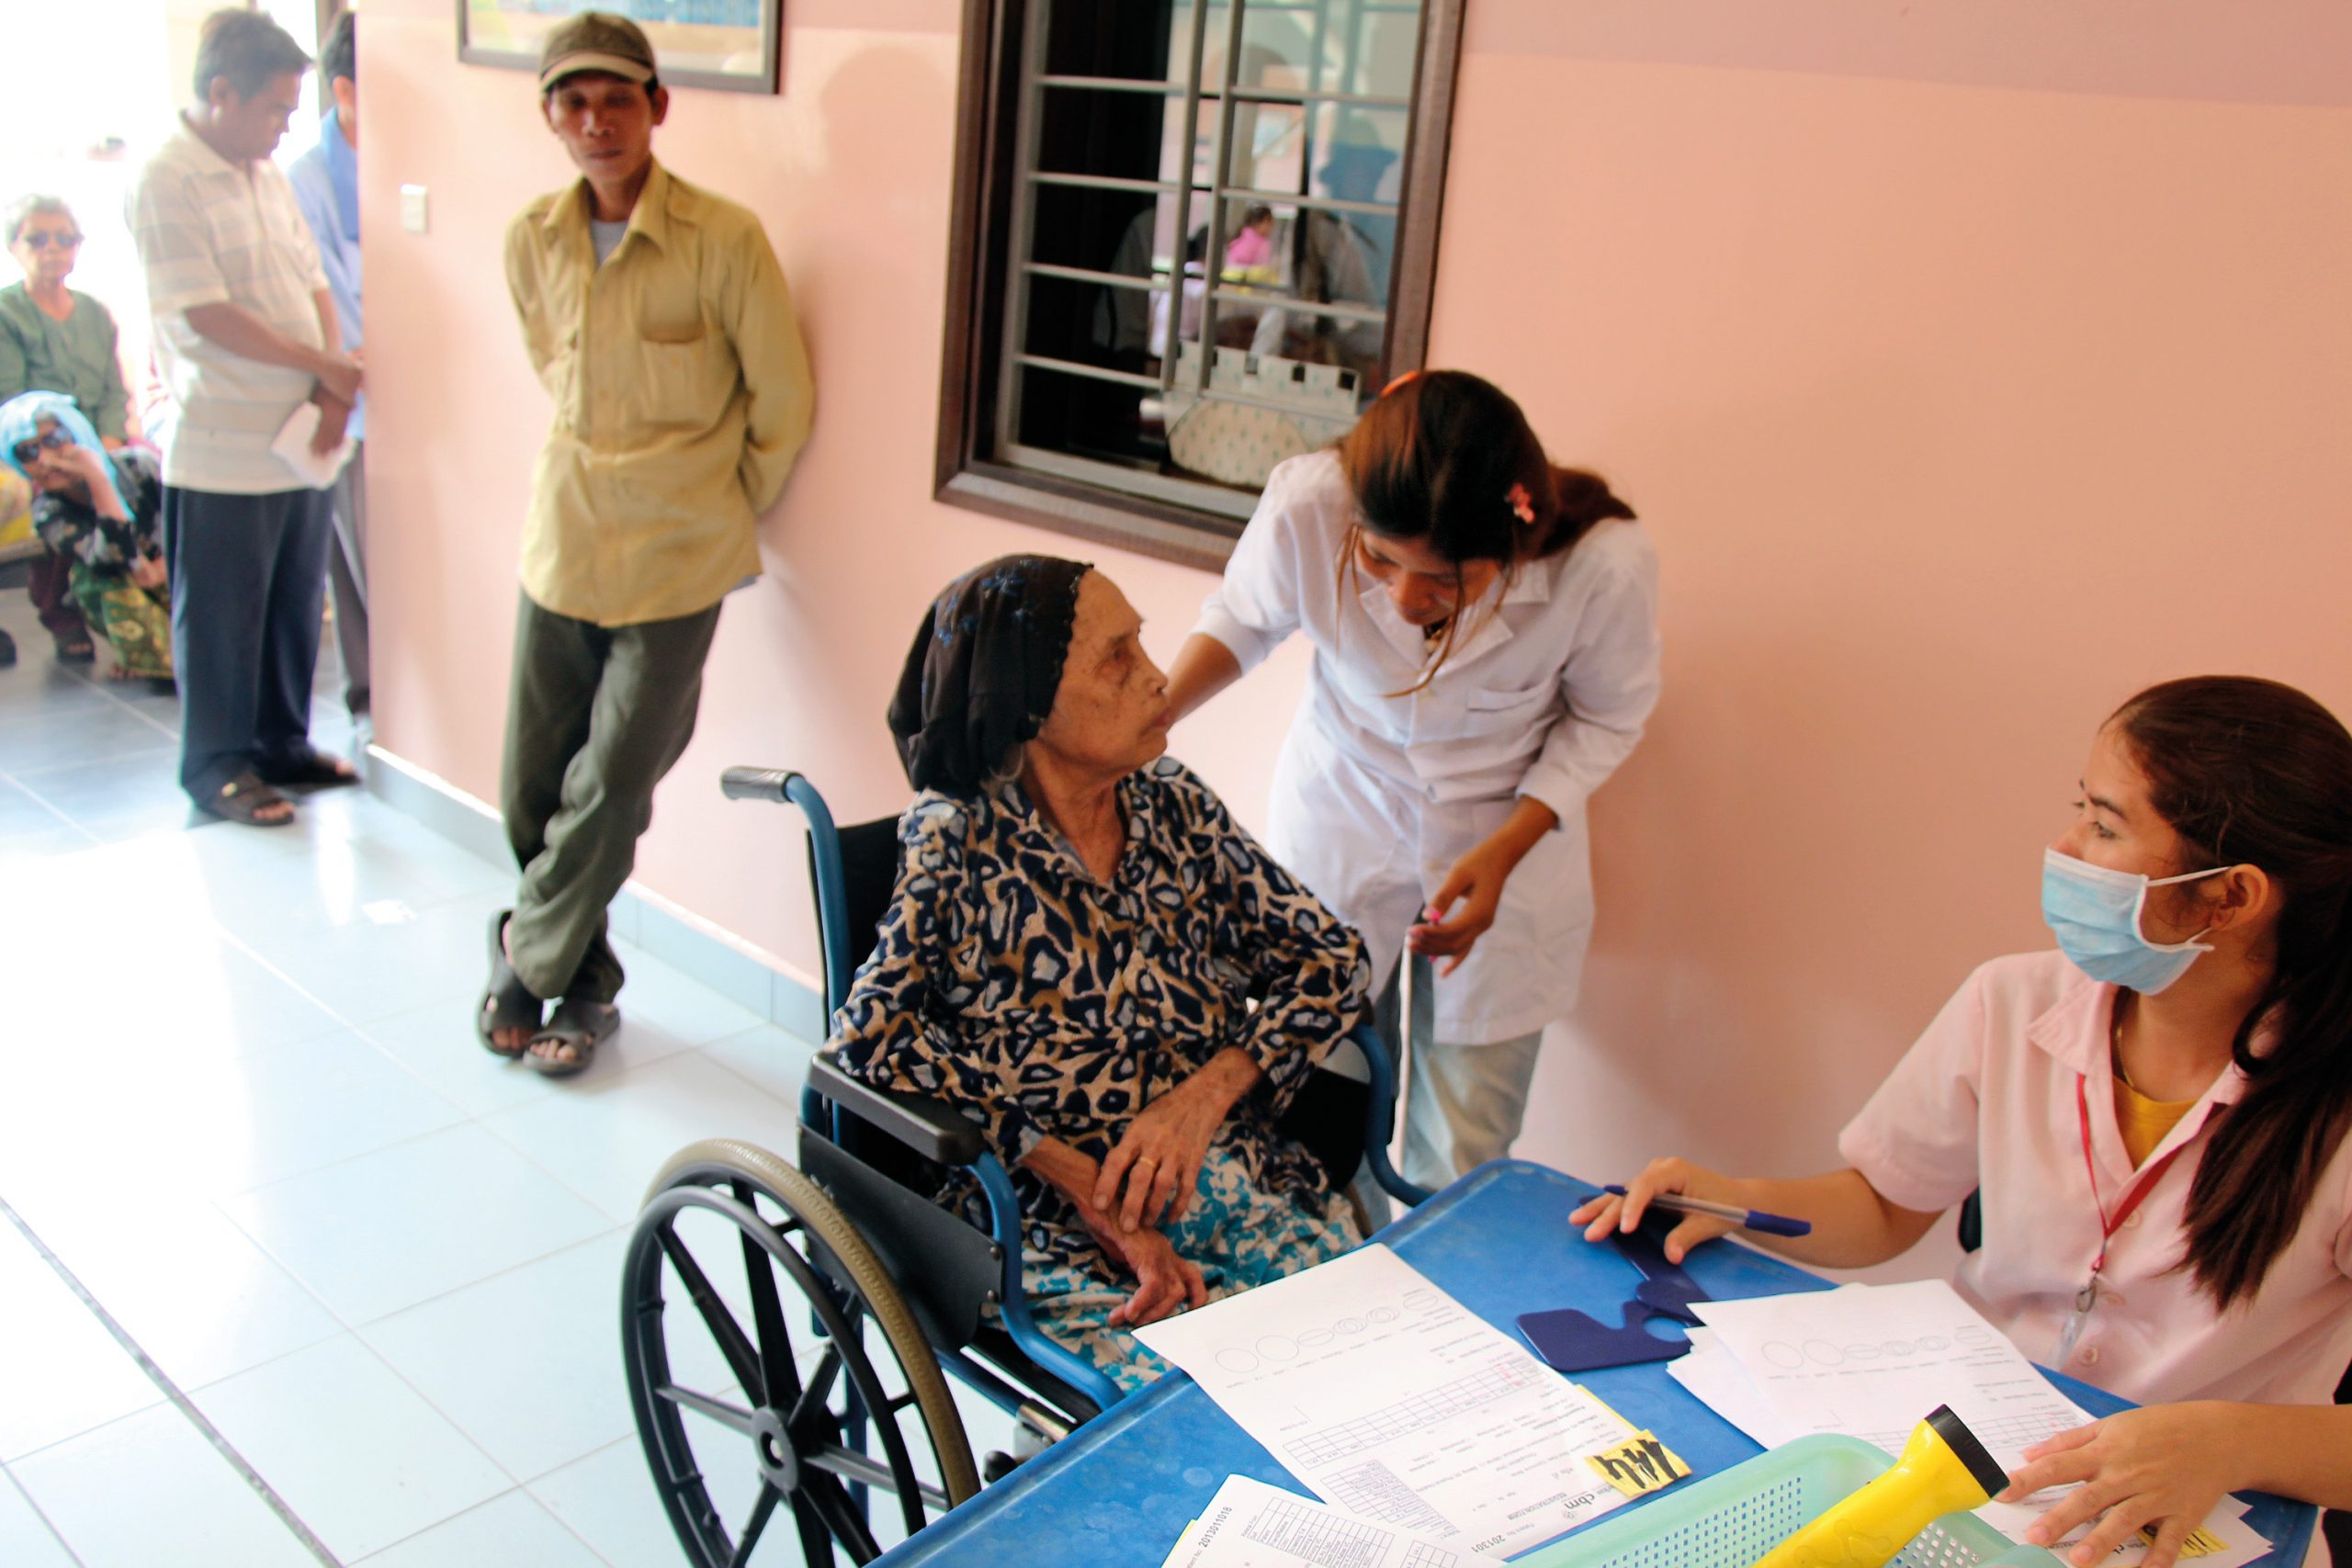 Old lady in a wheelchair being tended to by two nurses